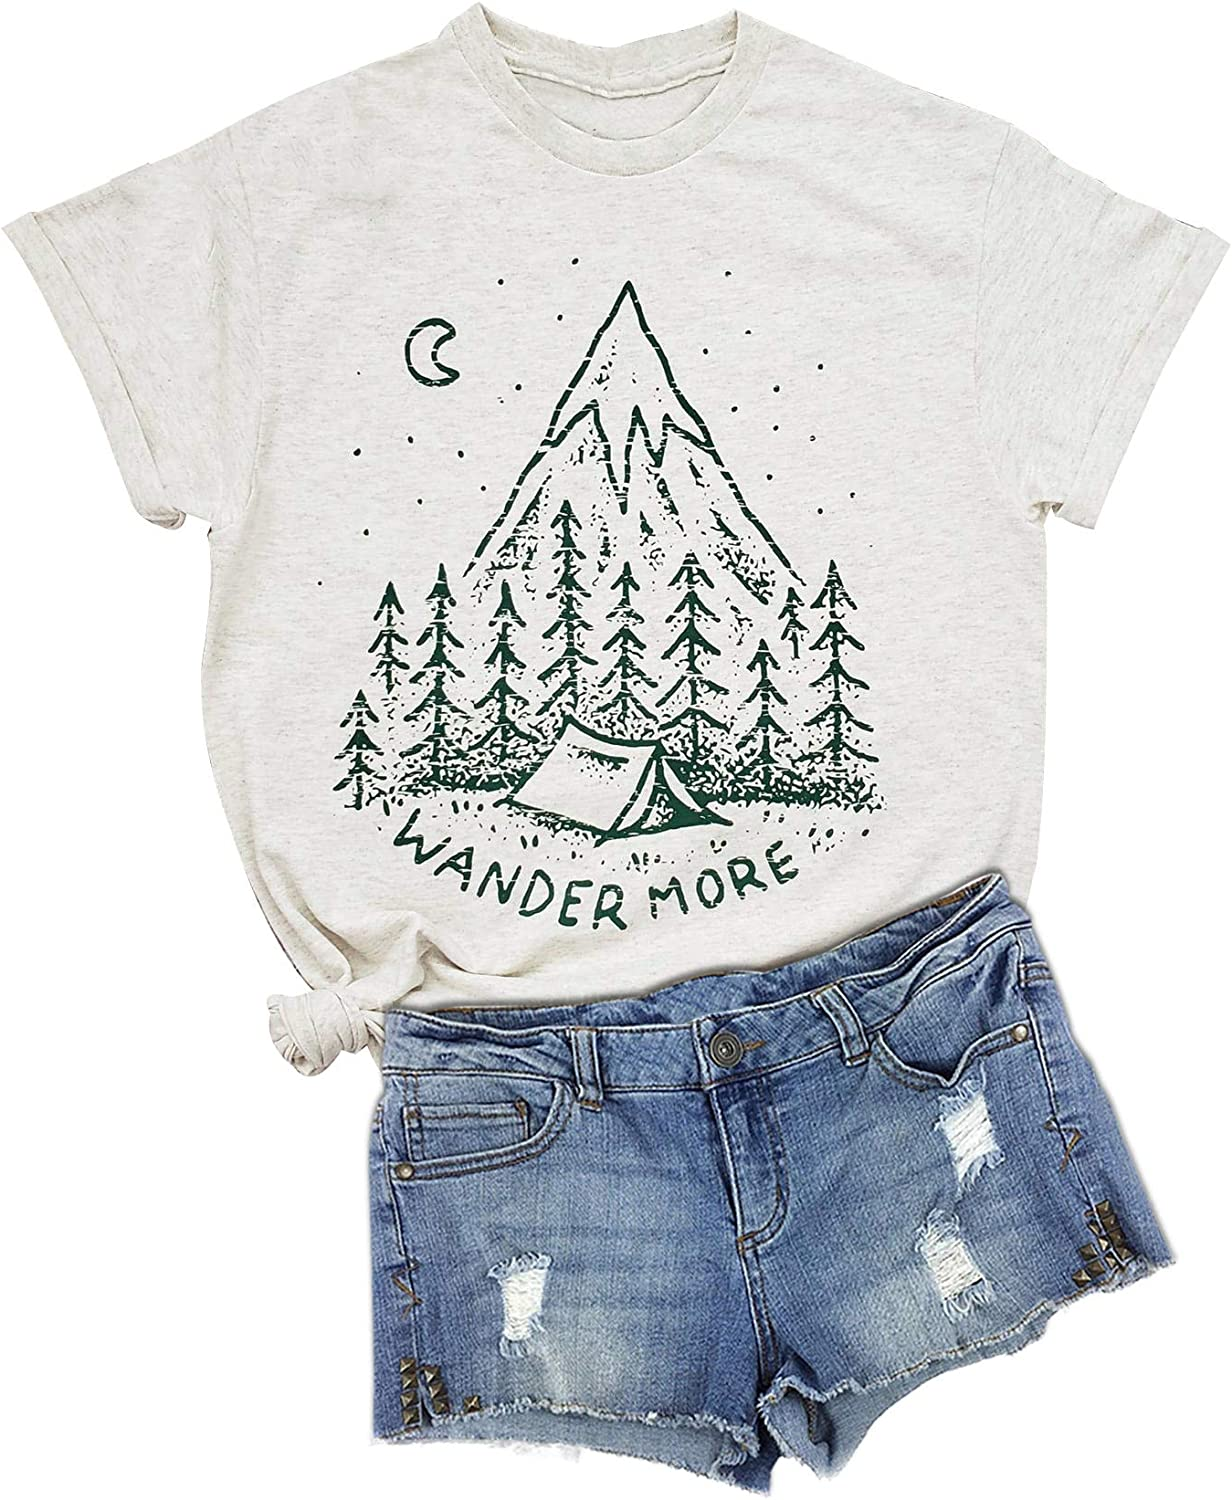 GEMLON Camping Shirts for Women Vintage Nature Graphic Tee Travel T-Shirt Short Sleeve Summer Outfits